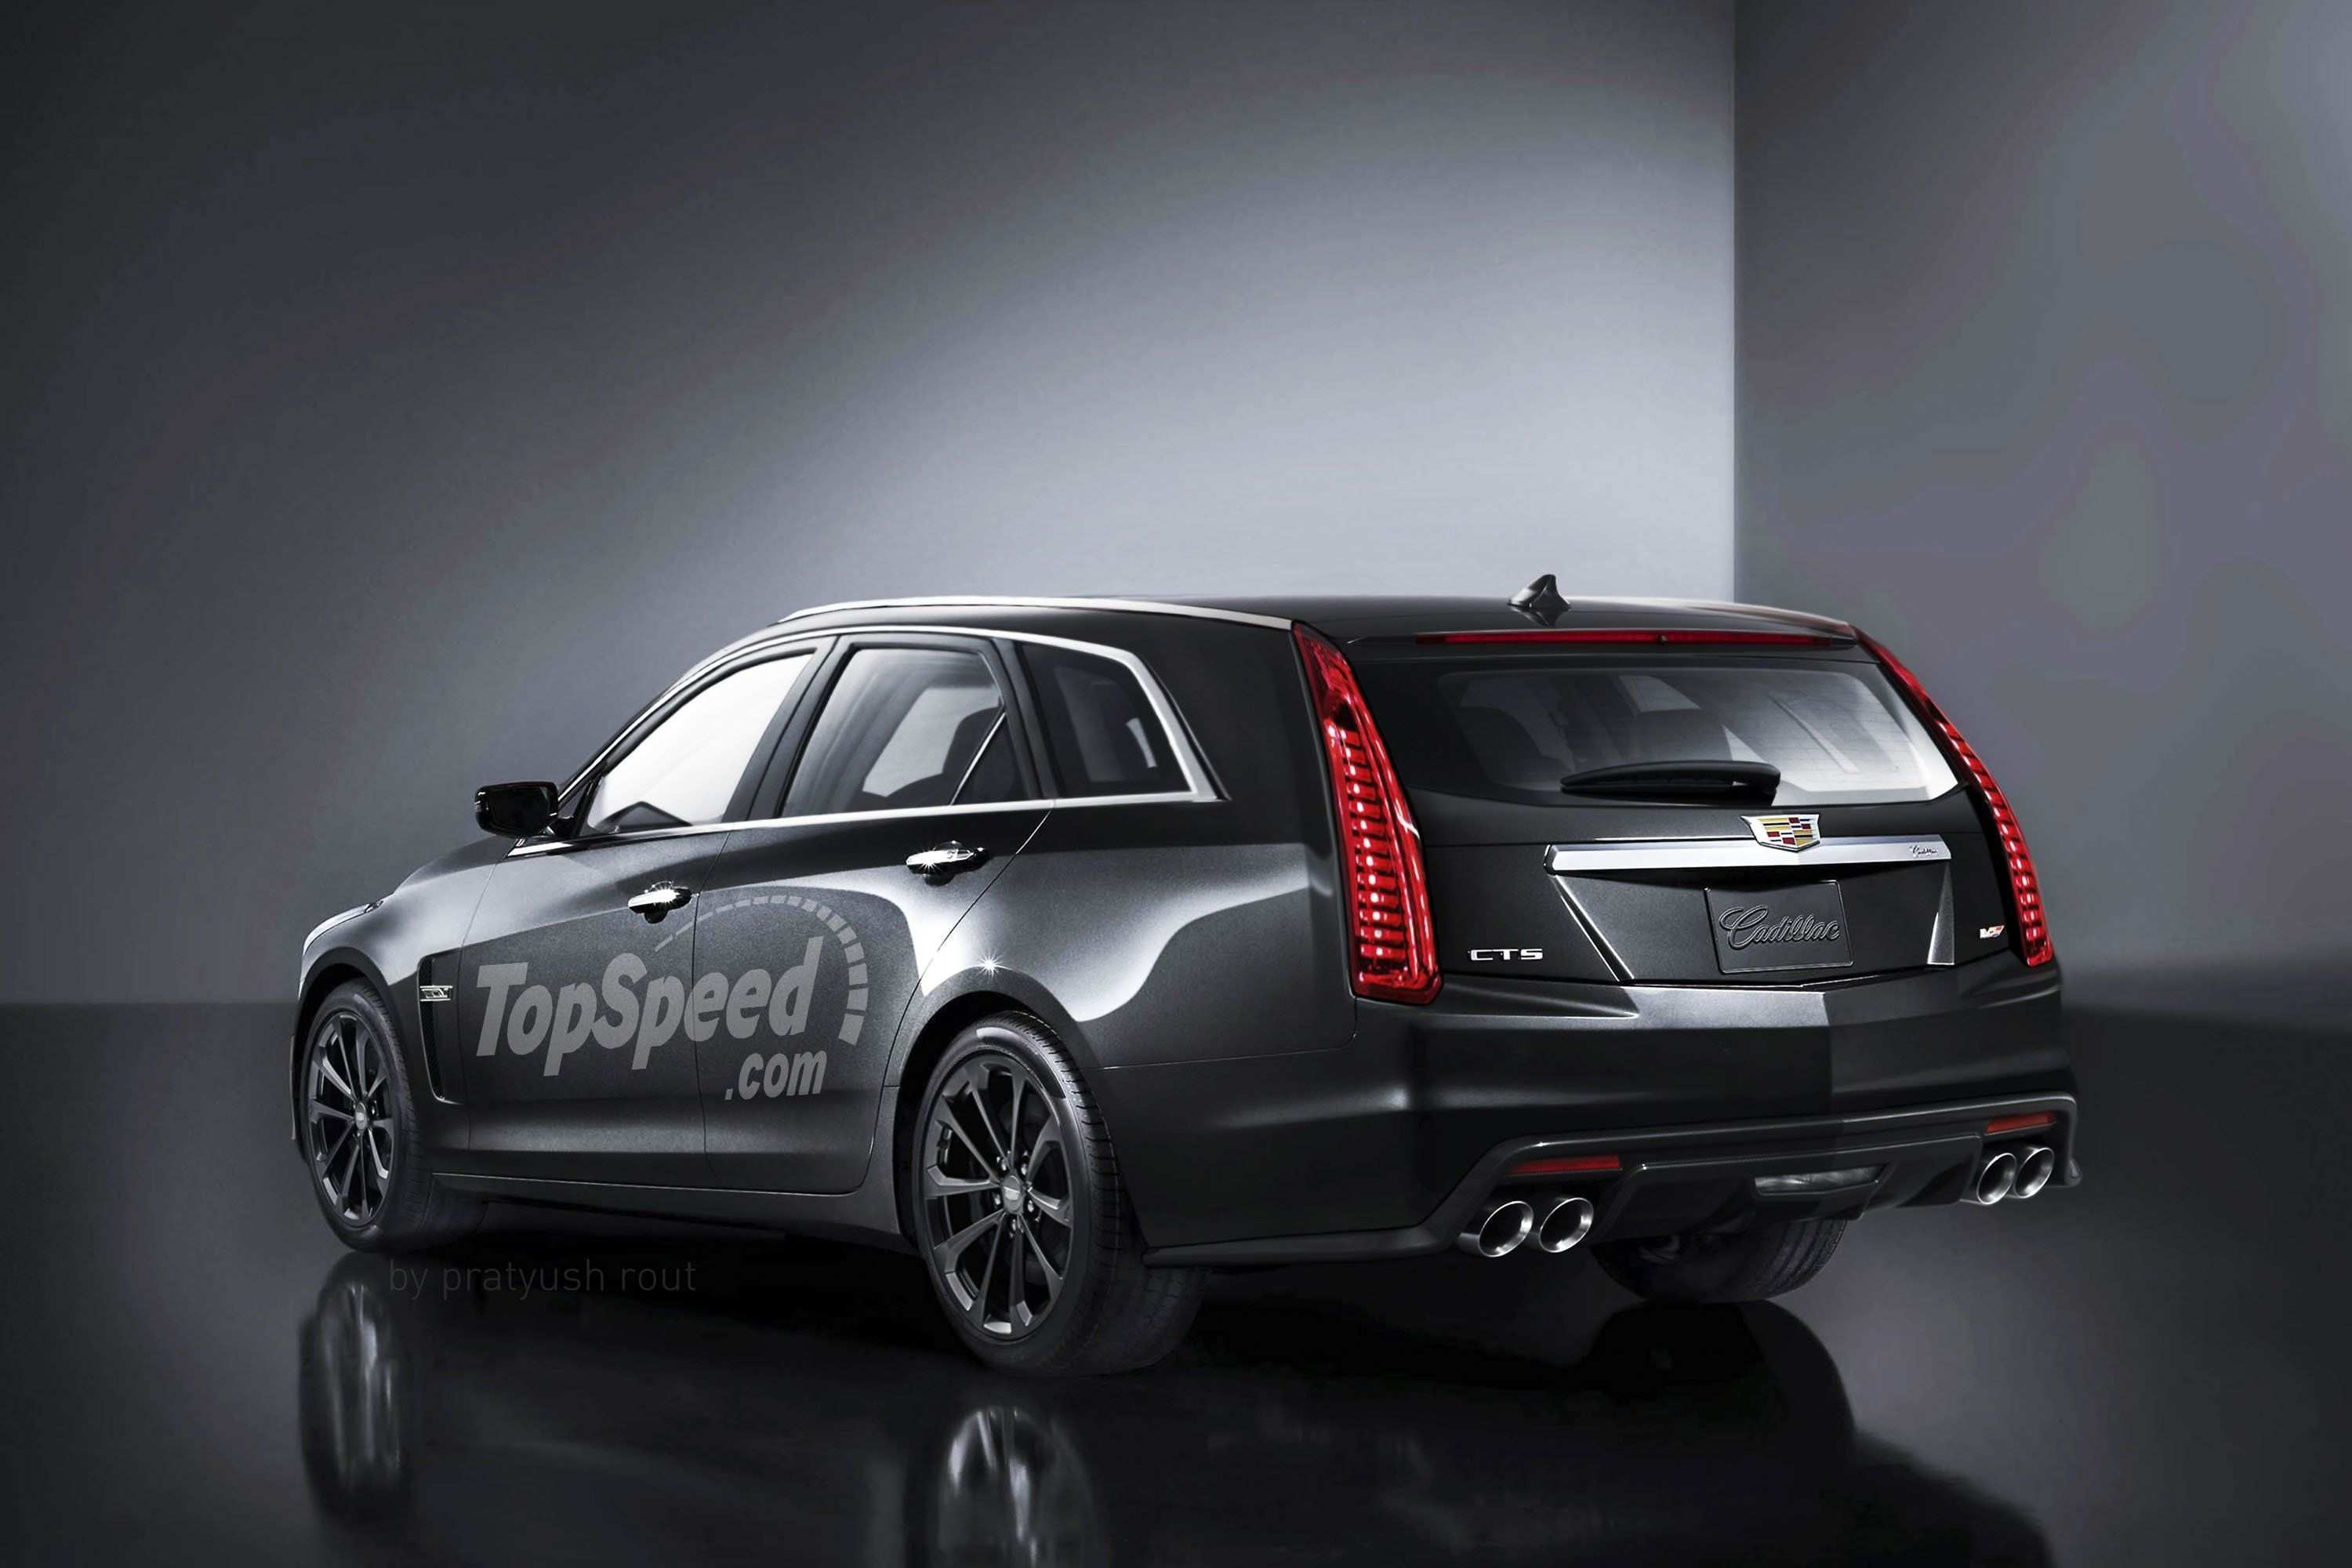 79 The Best Cadillac Ct5 2019 Specs And Review Speed Test by Best Cadillac Ct5 2019 Specs And Review